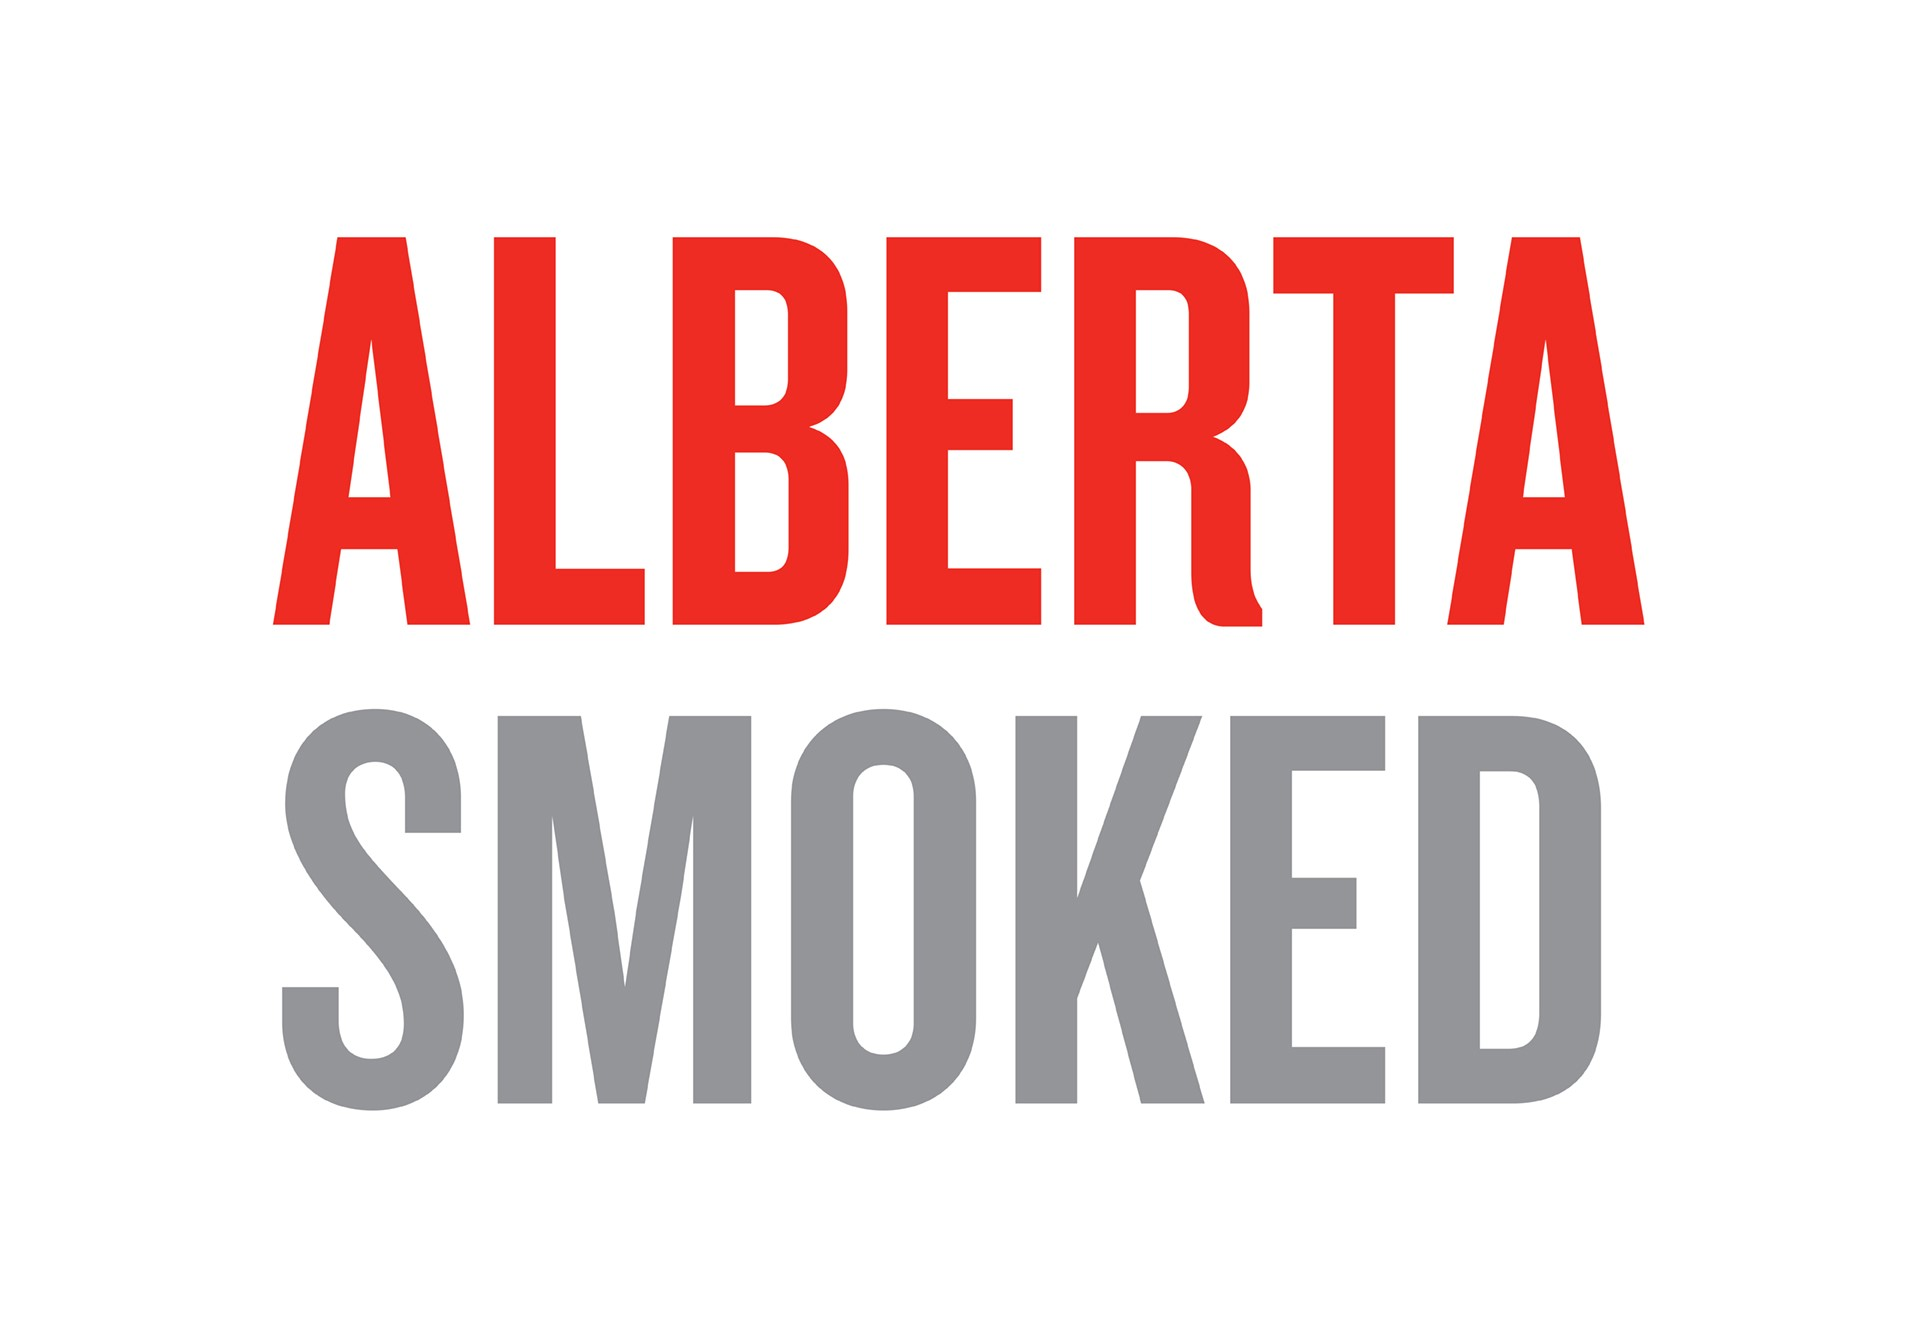 Alberta Smoked (Main Concourse)